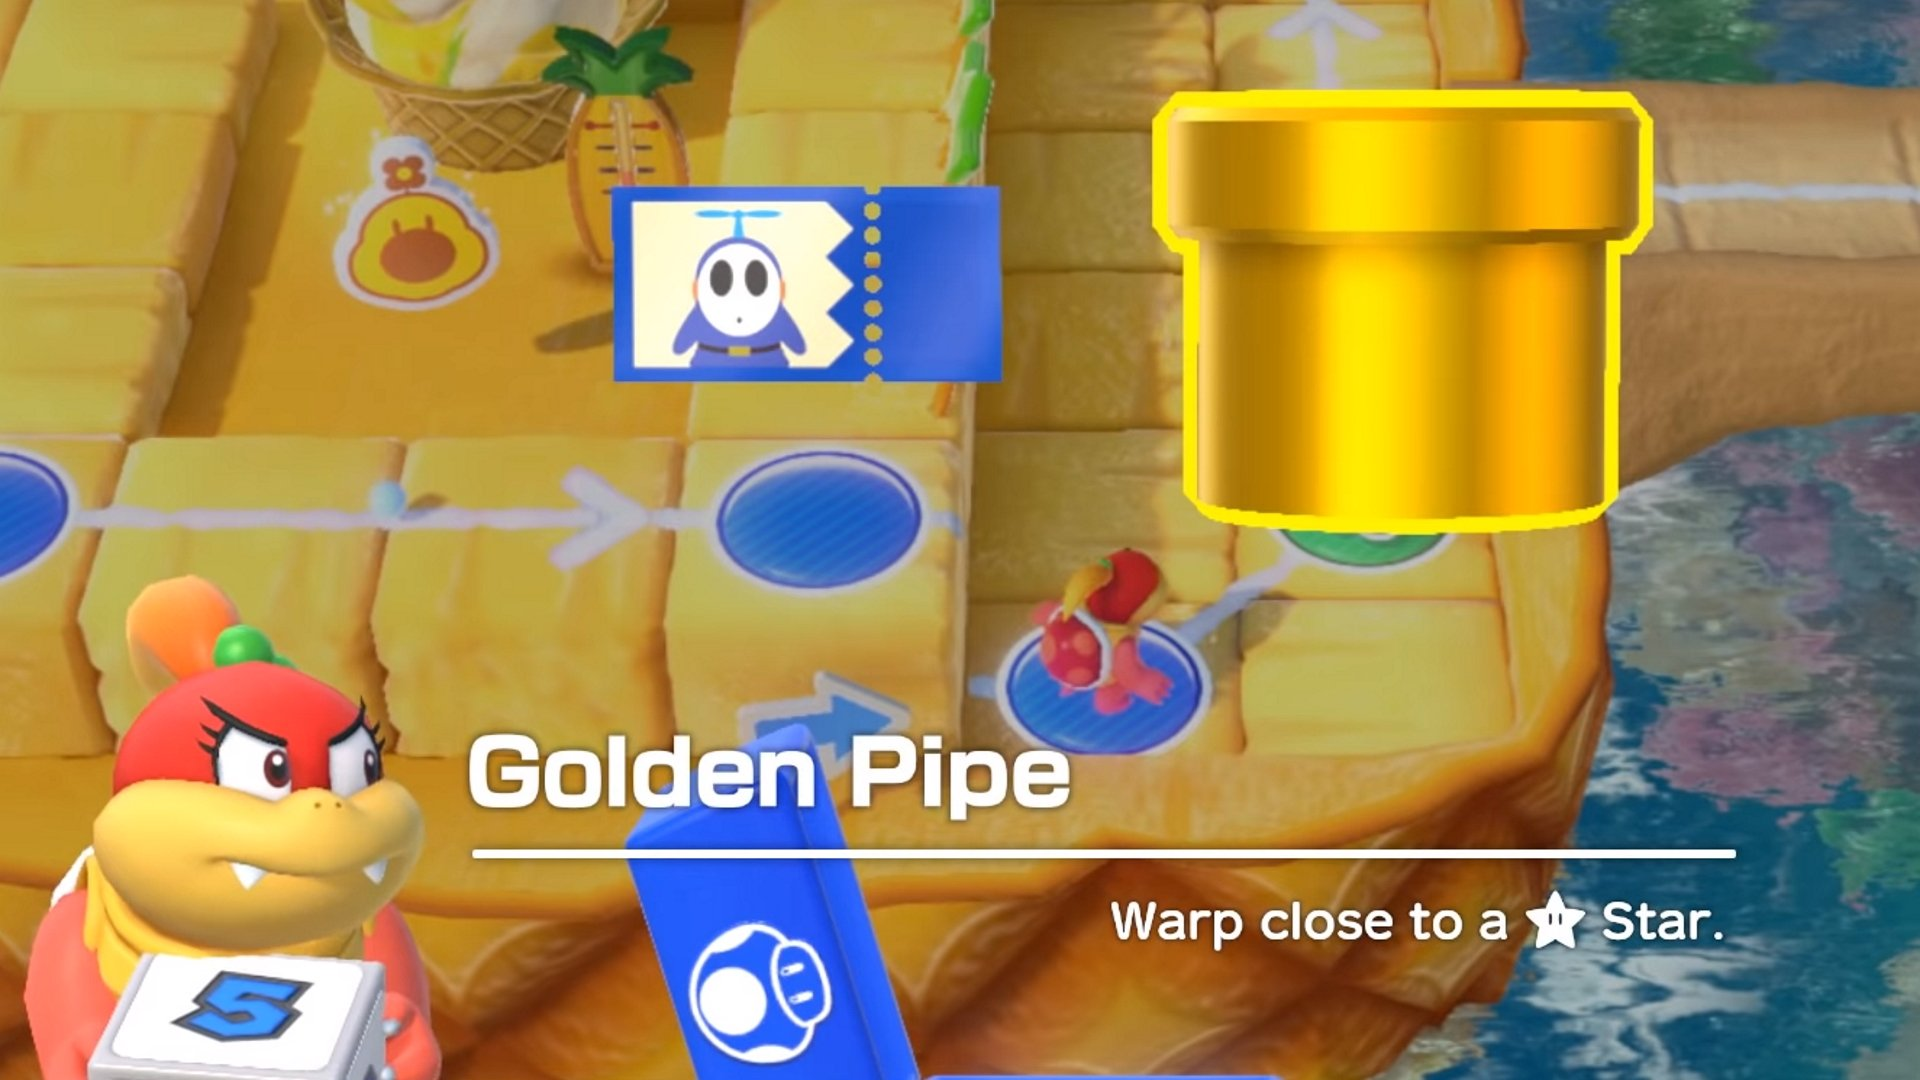 One of the many items that can ruin your day. © Nintendo